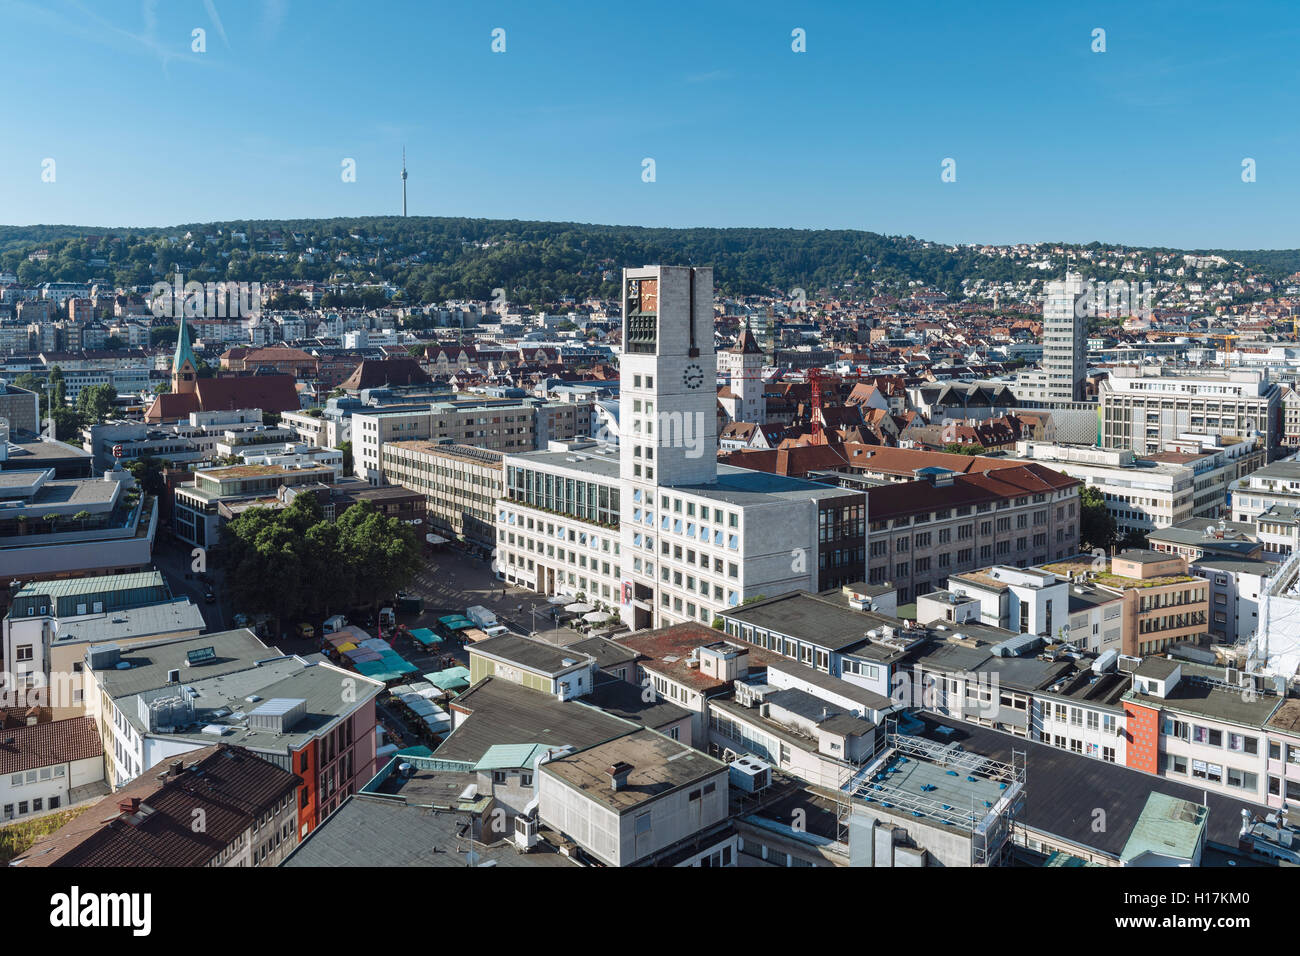 View of city, city hall and market square, Stuttgart, Baden-Württemberg, Germany - Stock Image